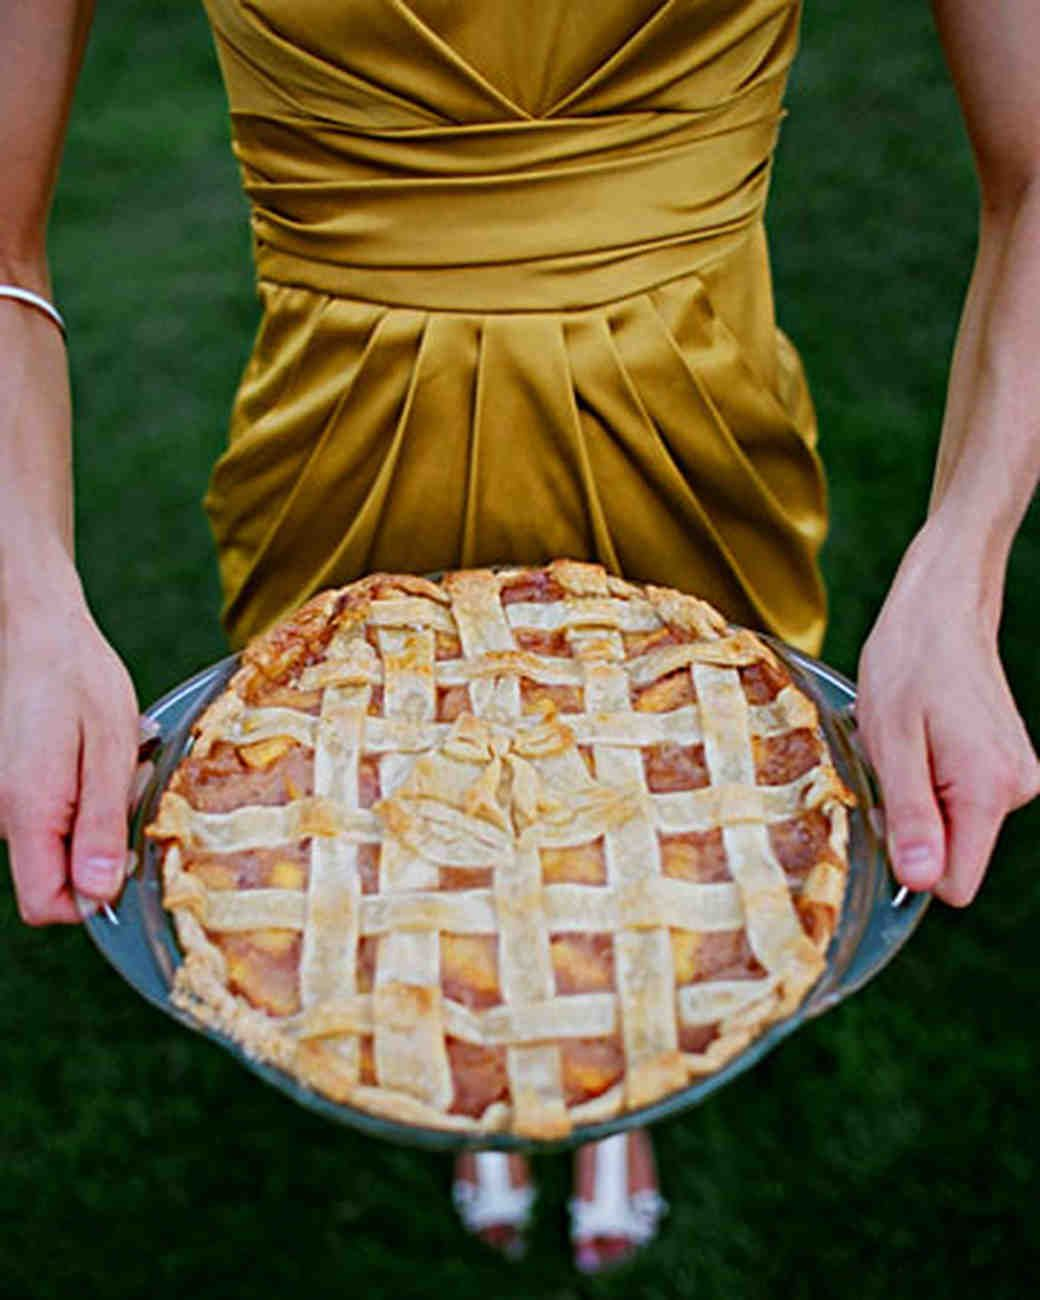 Weve Rounded Up Our Favorite Pie Ideas To Inspire Your Wedding Dessert